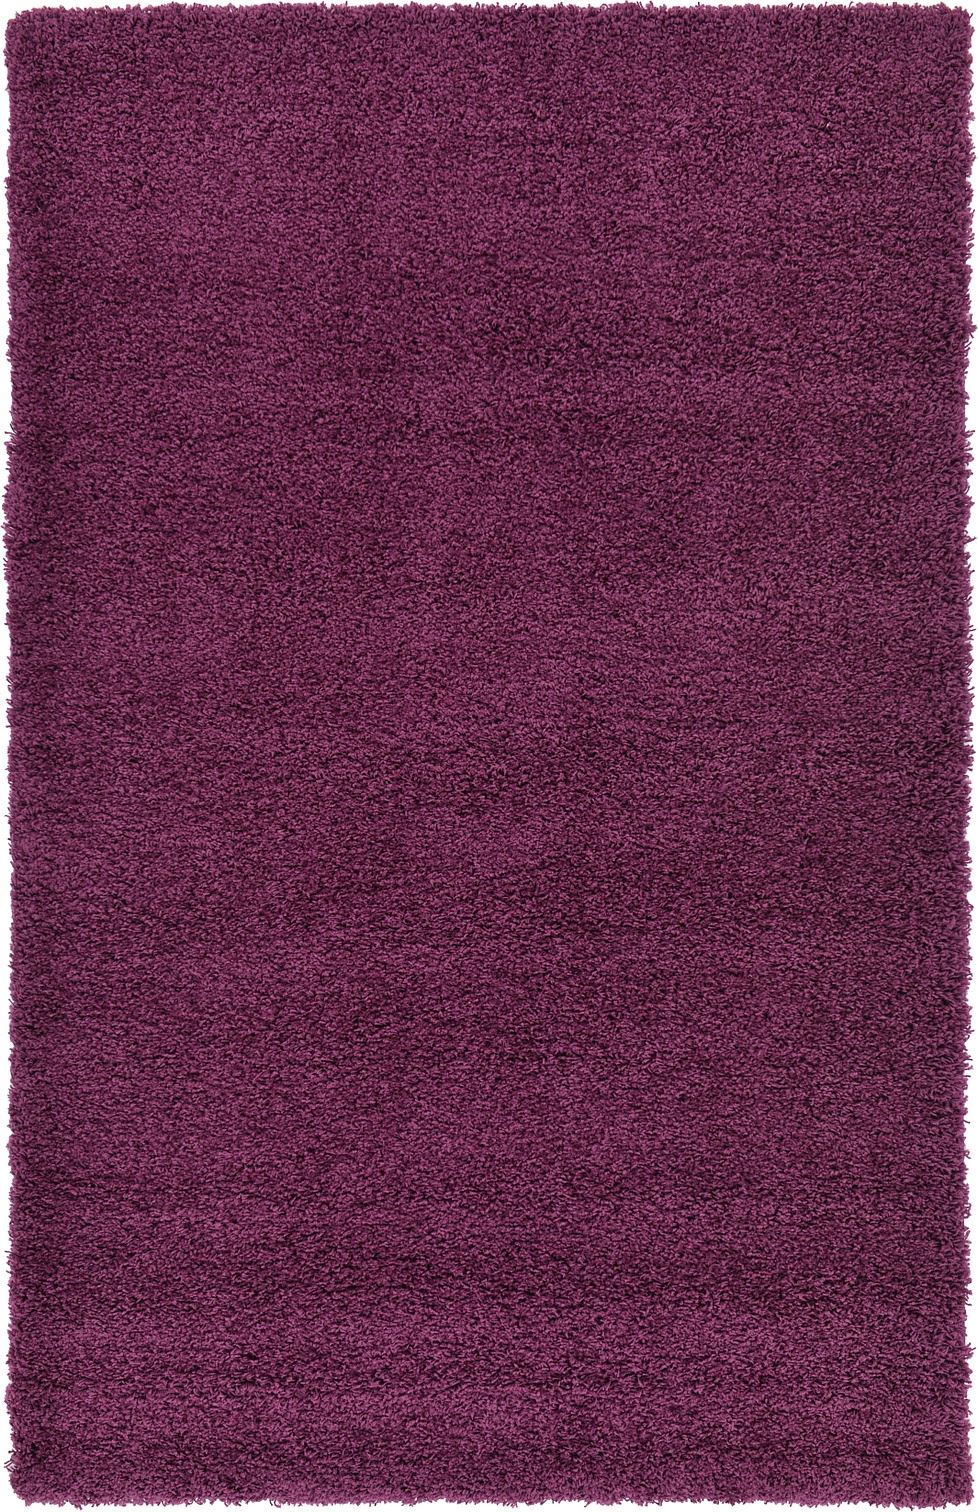 Modern large shag area rug contemporary small carpet red for Red area rugs contemporary